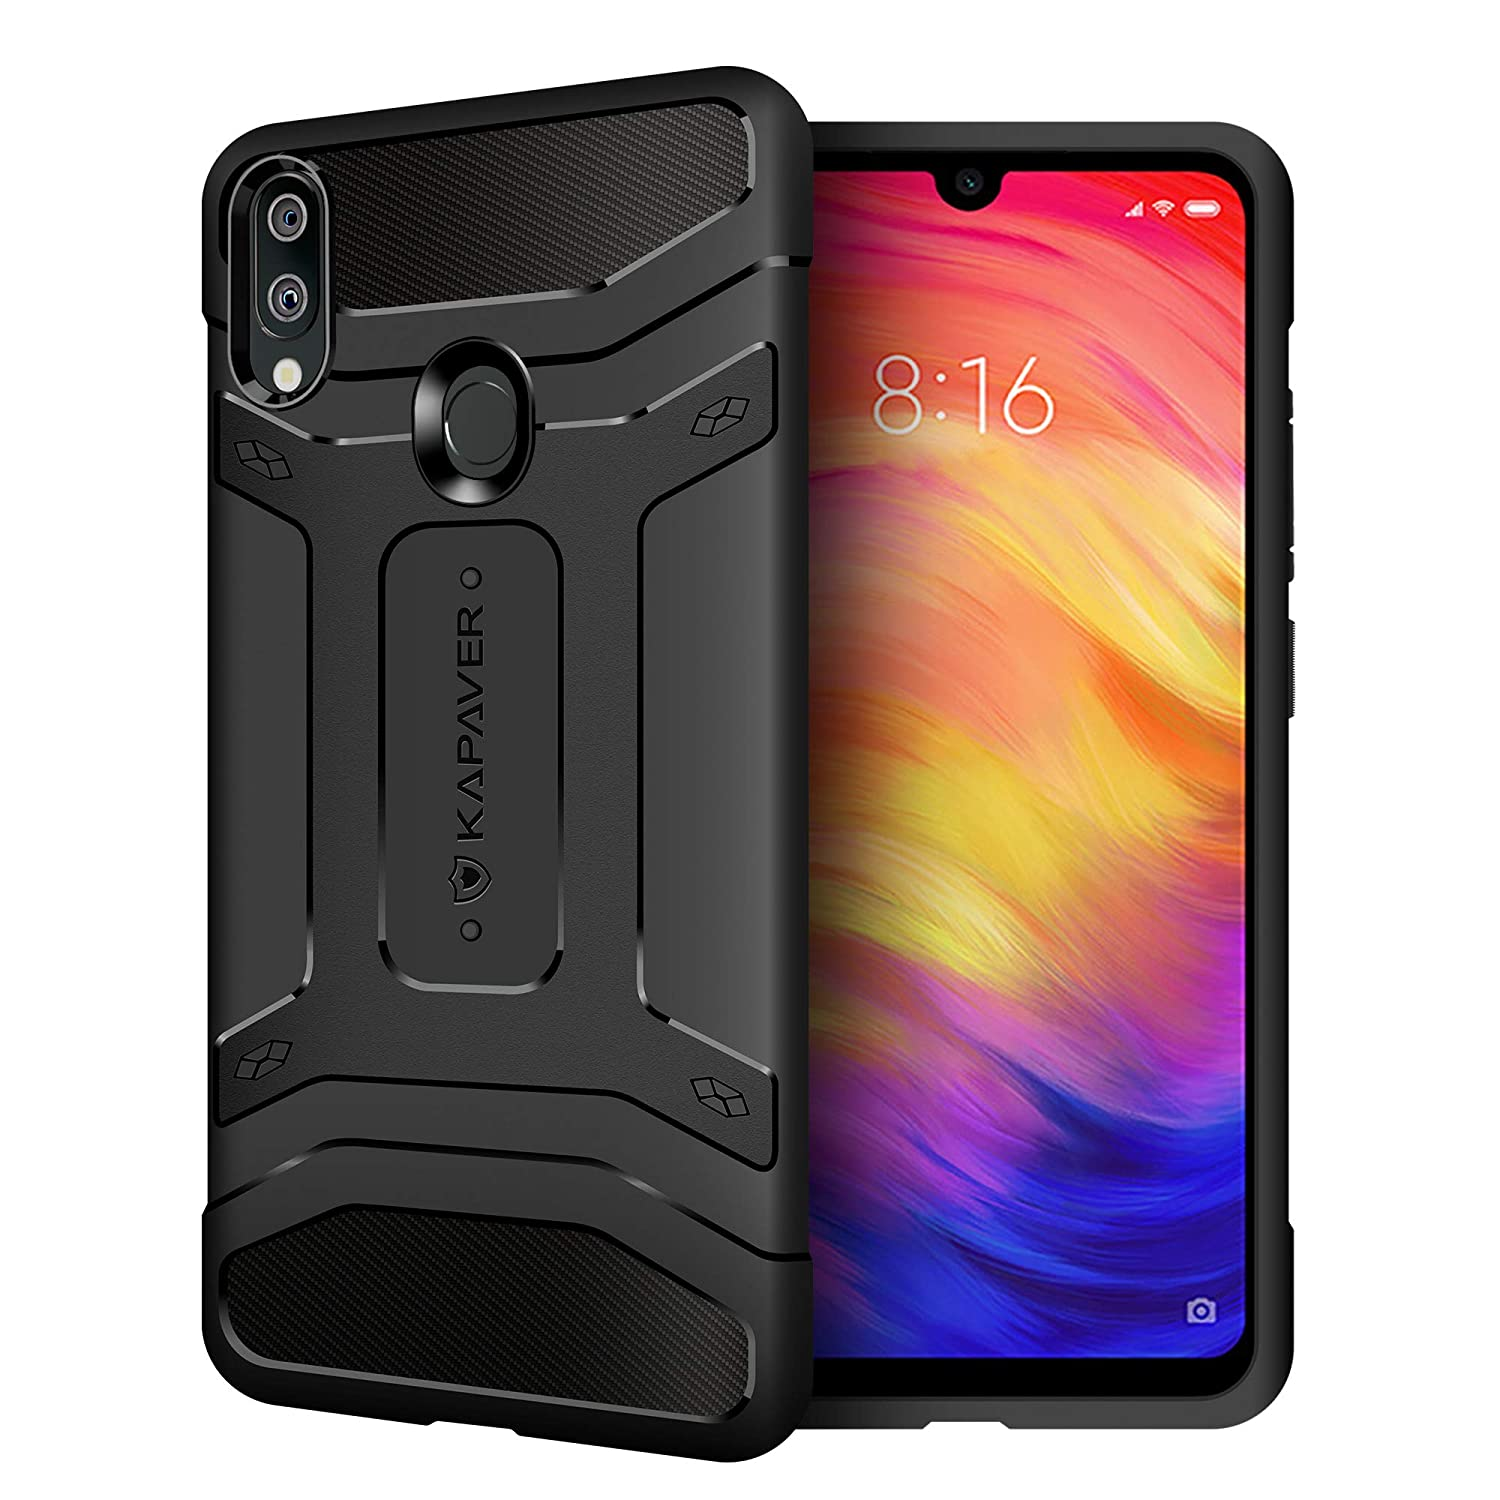 new styles 79e40 96fa4 KAPAVER® Xiaomi Redmi Note 7 / Redmi Note 7 / Redmi Note 7S Pro Rugged Back  Cover Case MIL-STD 810G Officially Drop Tested Solid Black Shock Proof ...